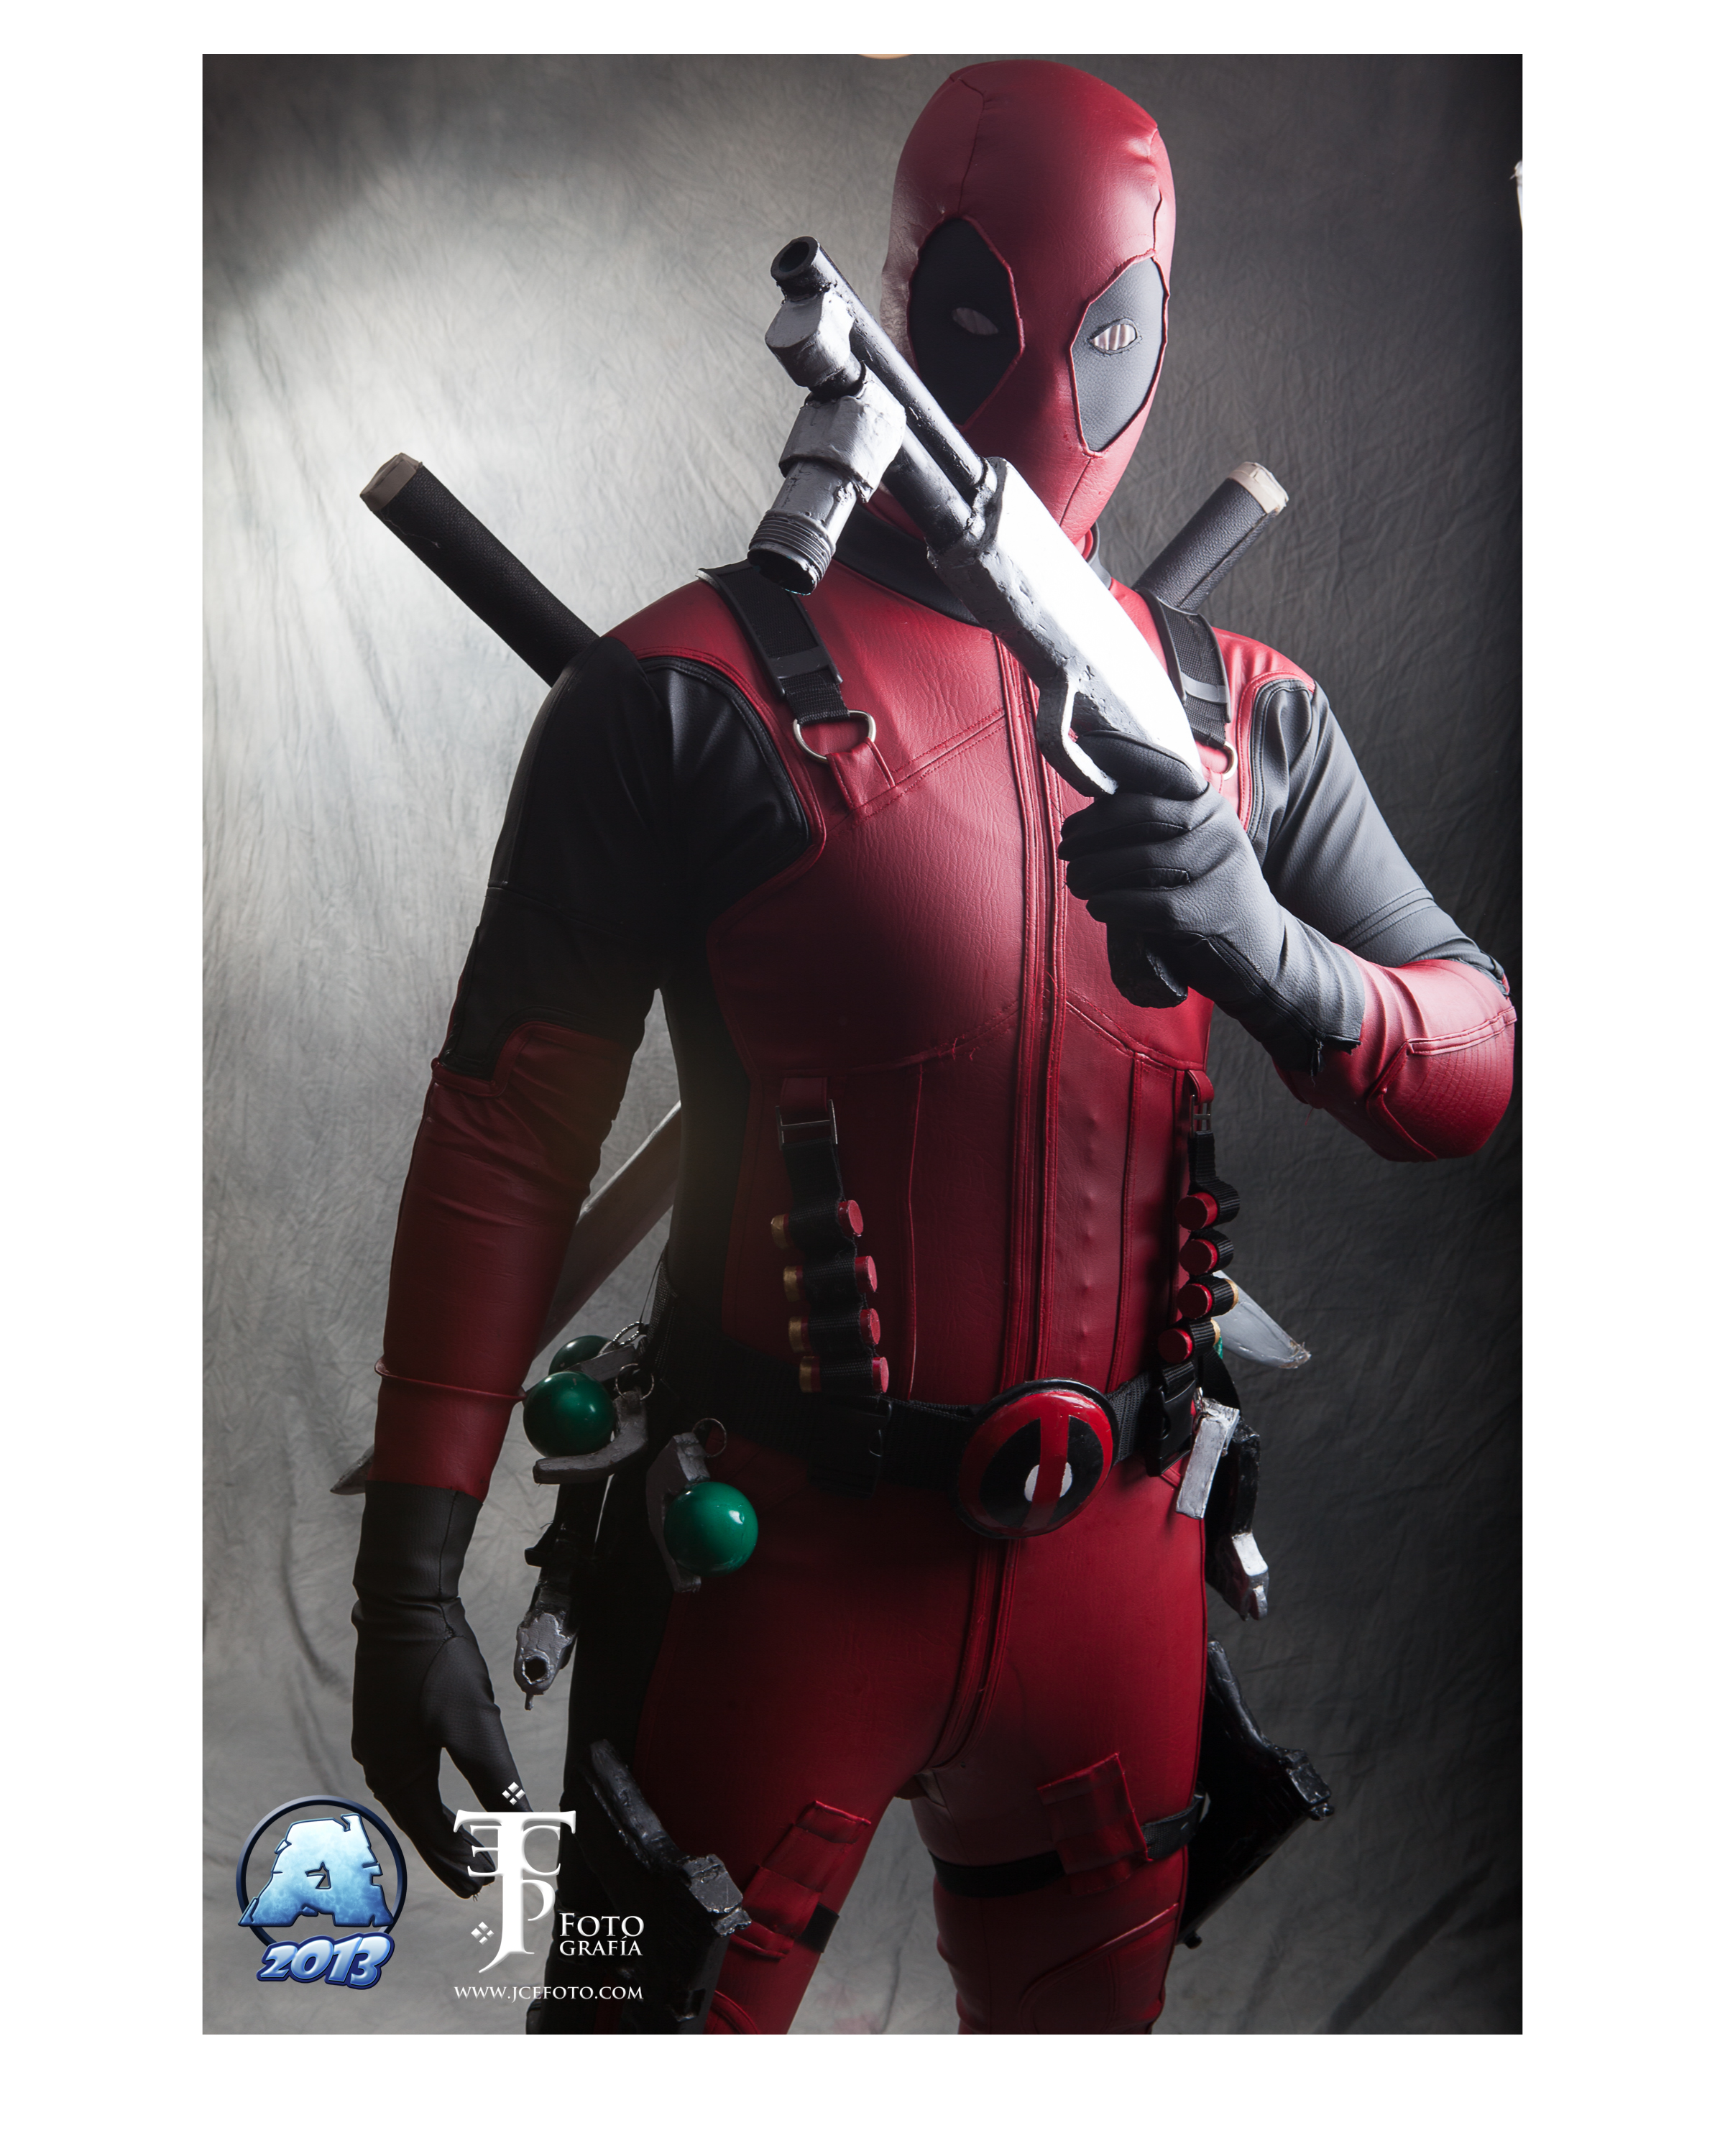 deadpool cosplay by xcomve on DeviantArt